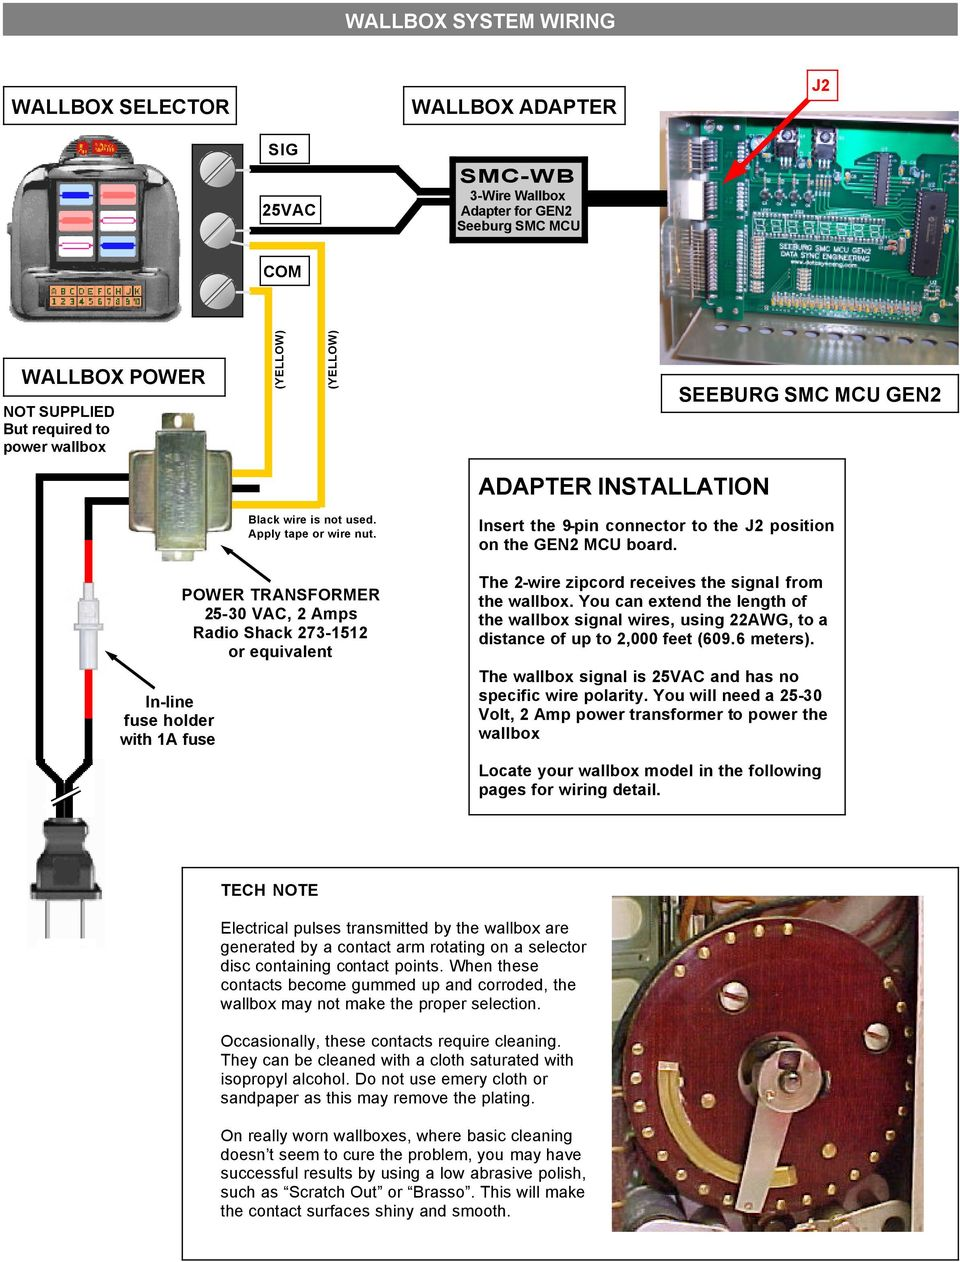 3-Wire Wallbox Adapter For Seeburg SMC jukeboxes with the GEN2 MCU - PDF